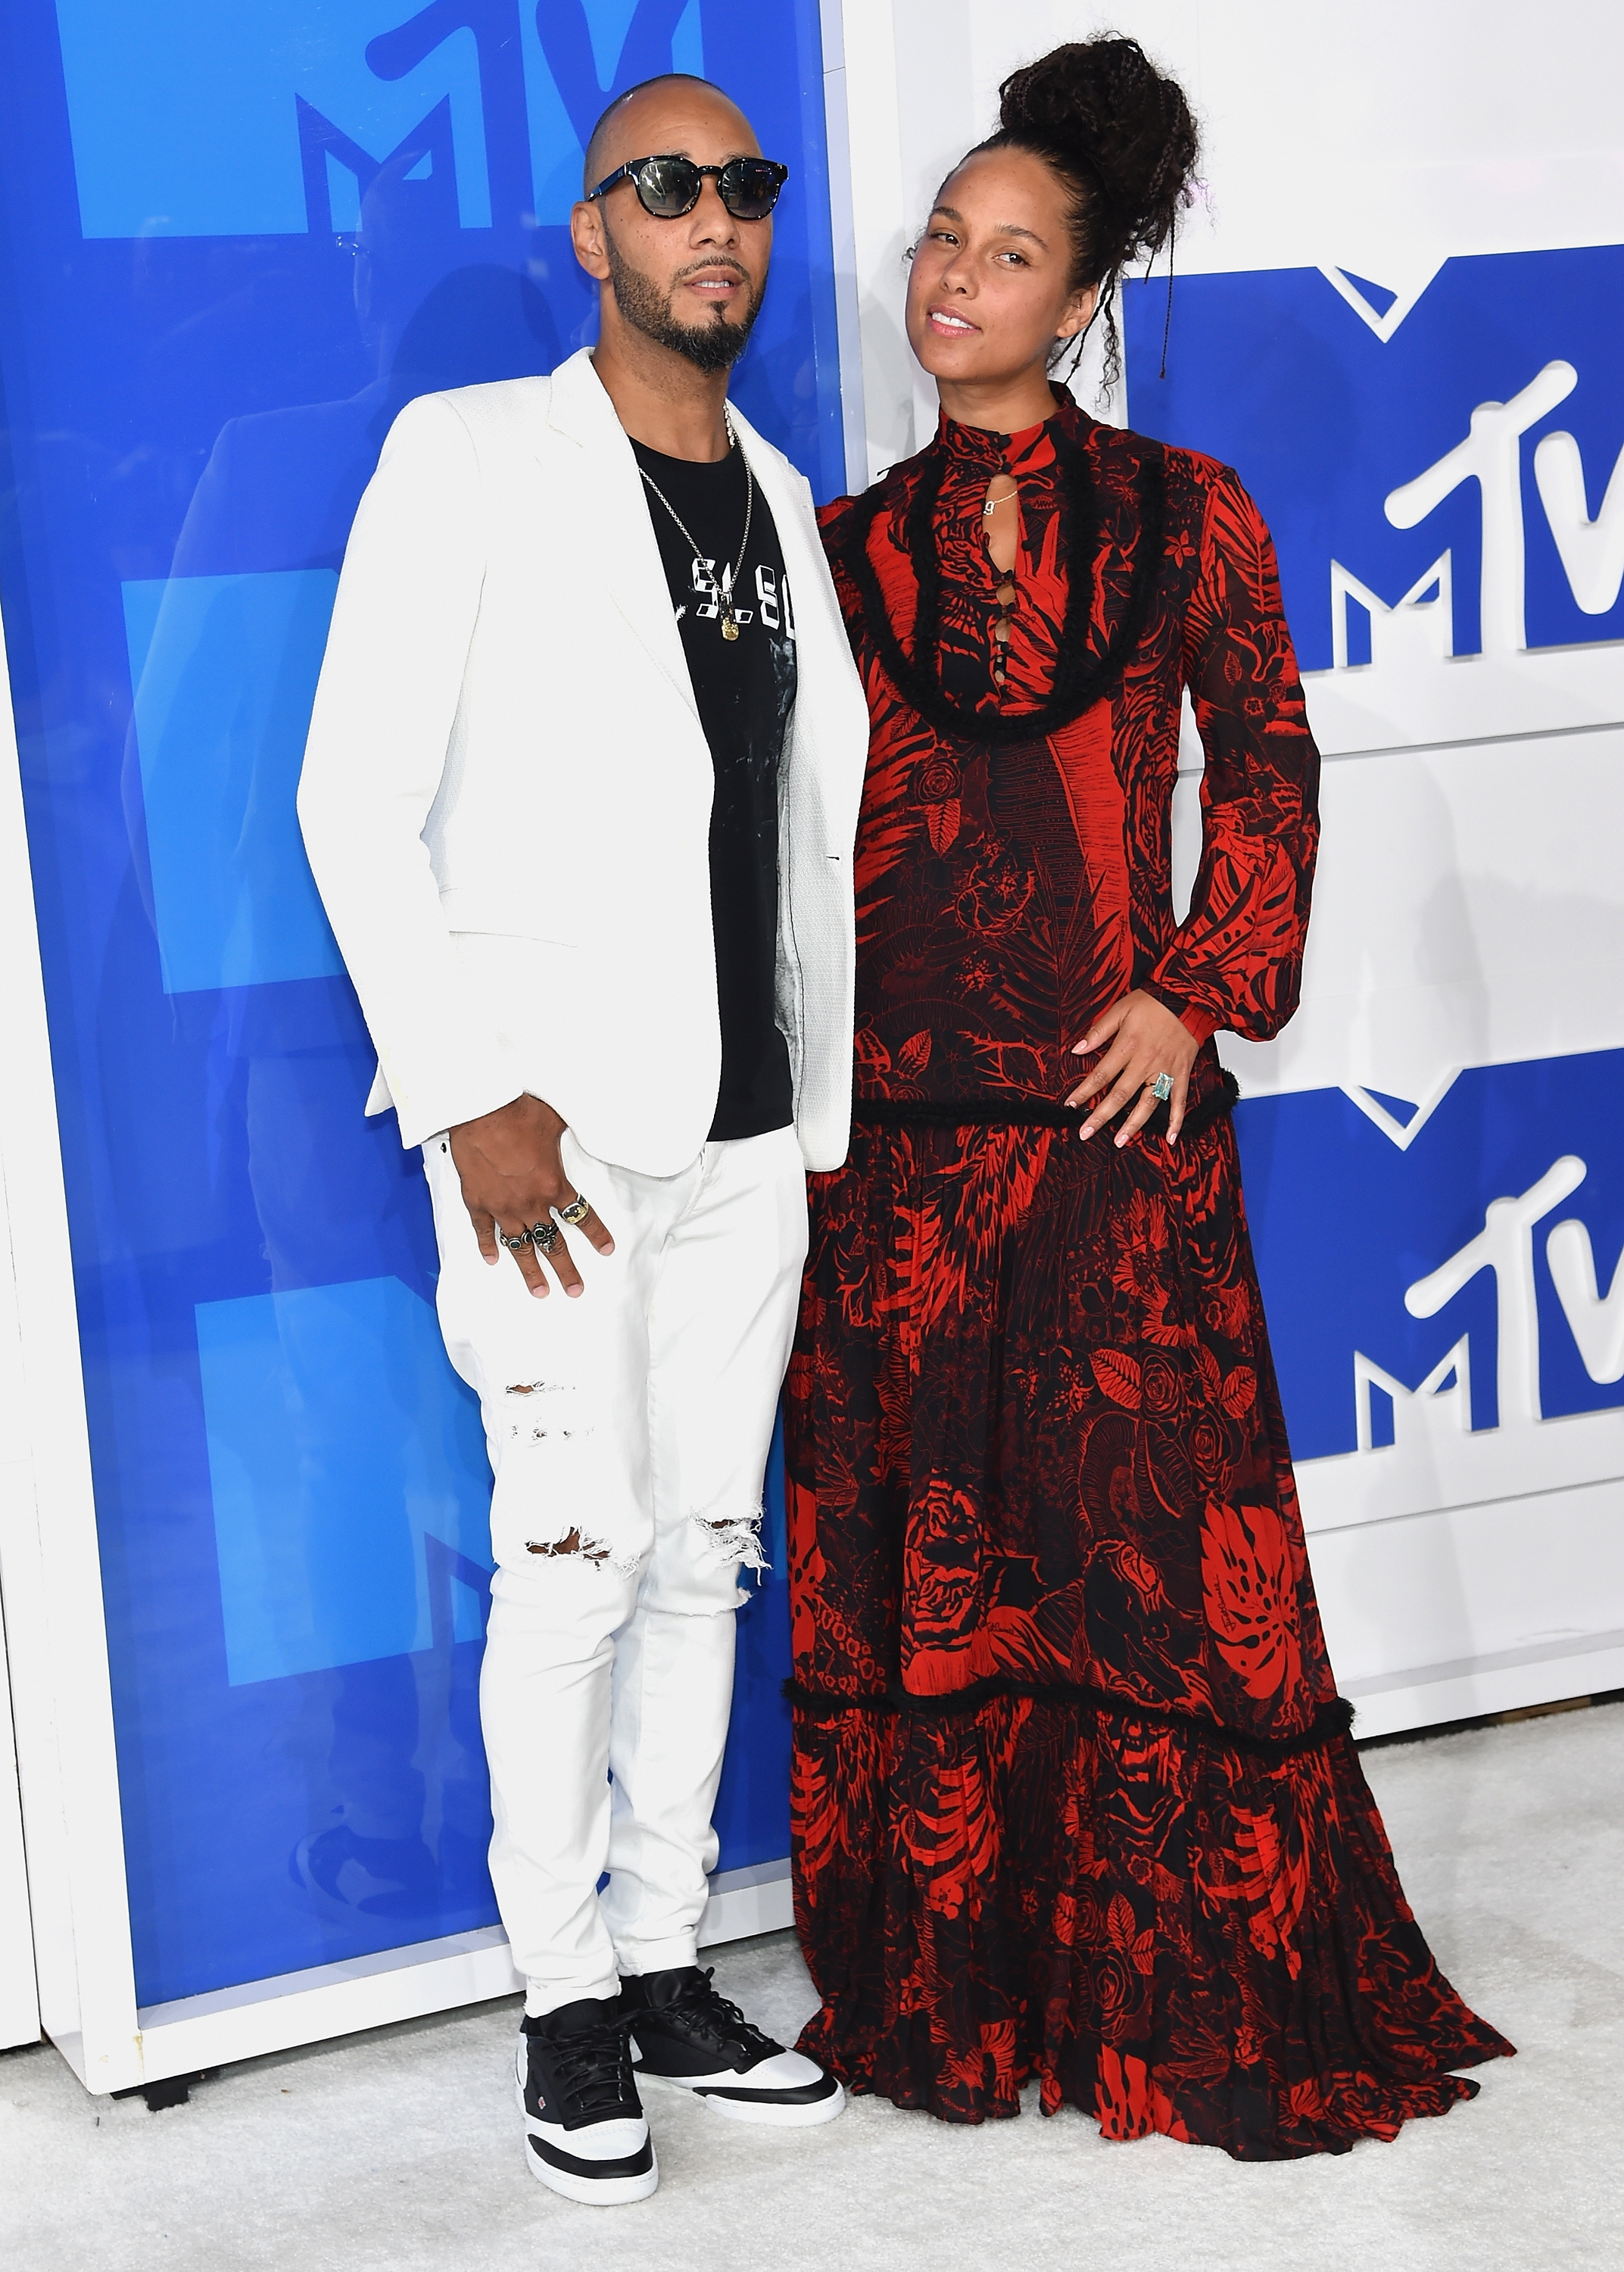 Swizz Beatz and Alicia Keys attend the 2016 MTV Video Music Awards at Madison Square Garden on Aug. 28, 2016 in New York City.